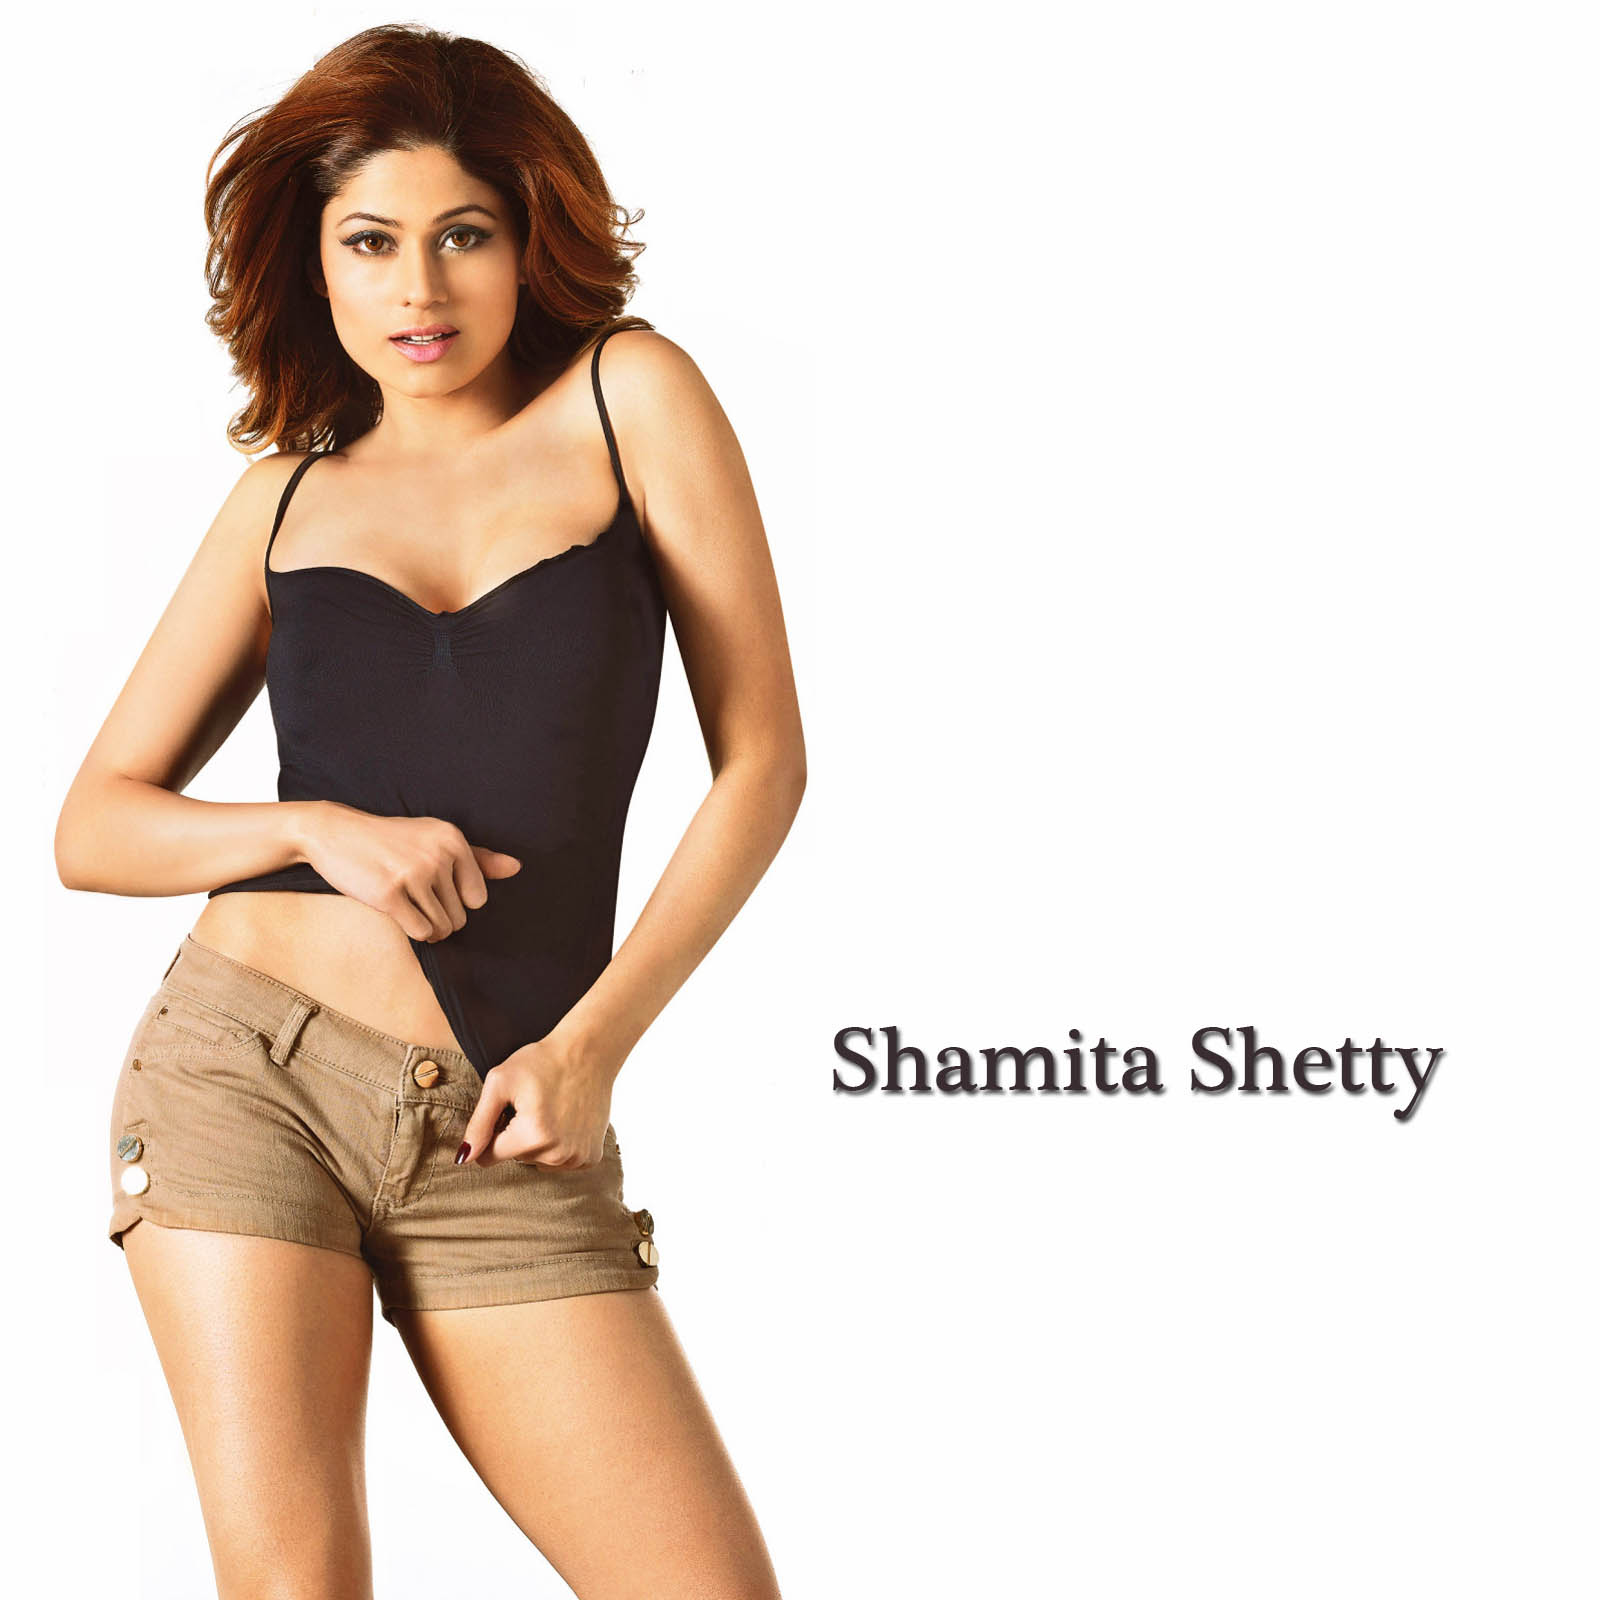 Nude sexy kiss images of shamita shetty, disgusting men fuck porn stars mobile porn